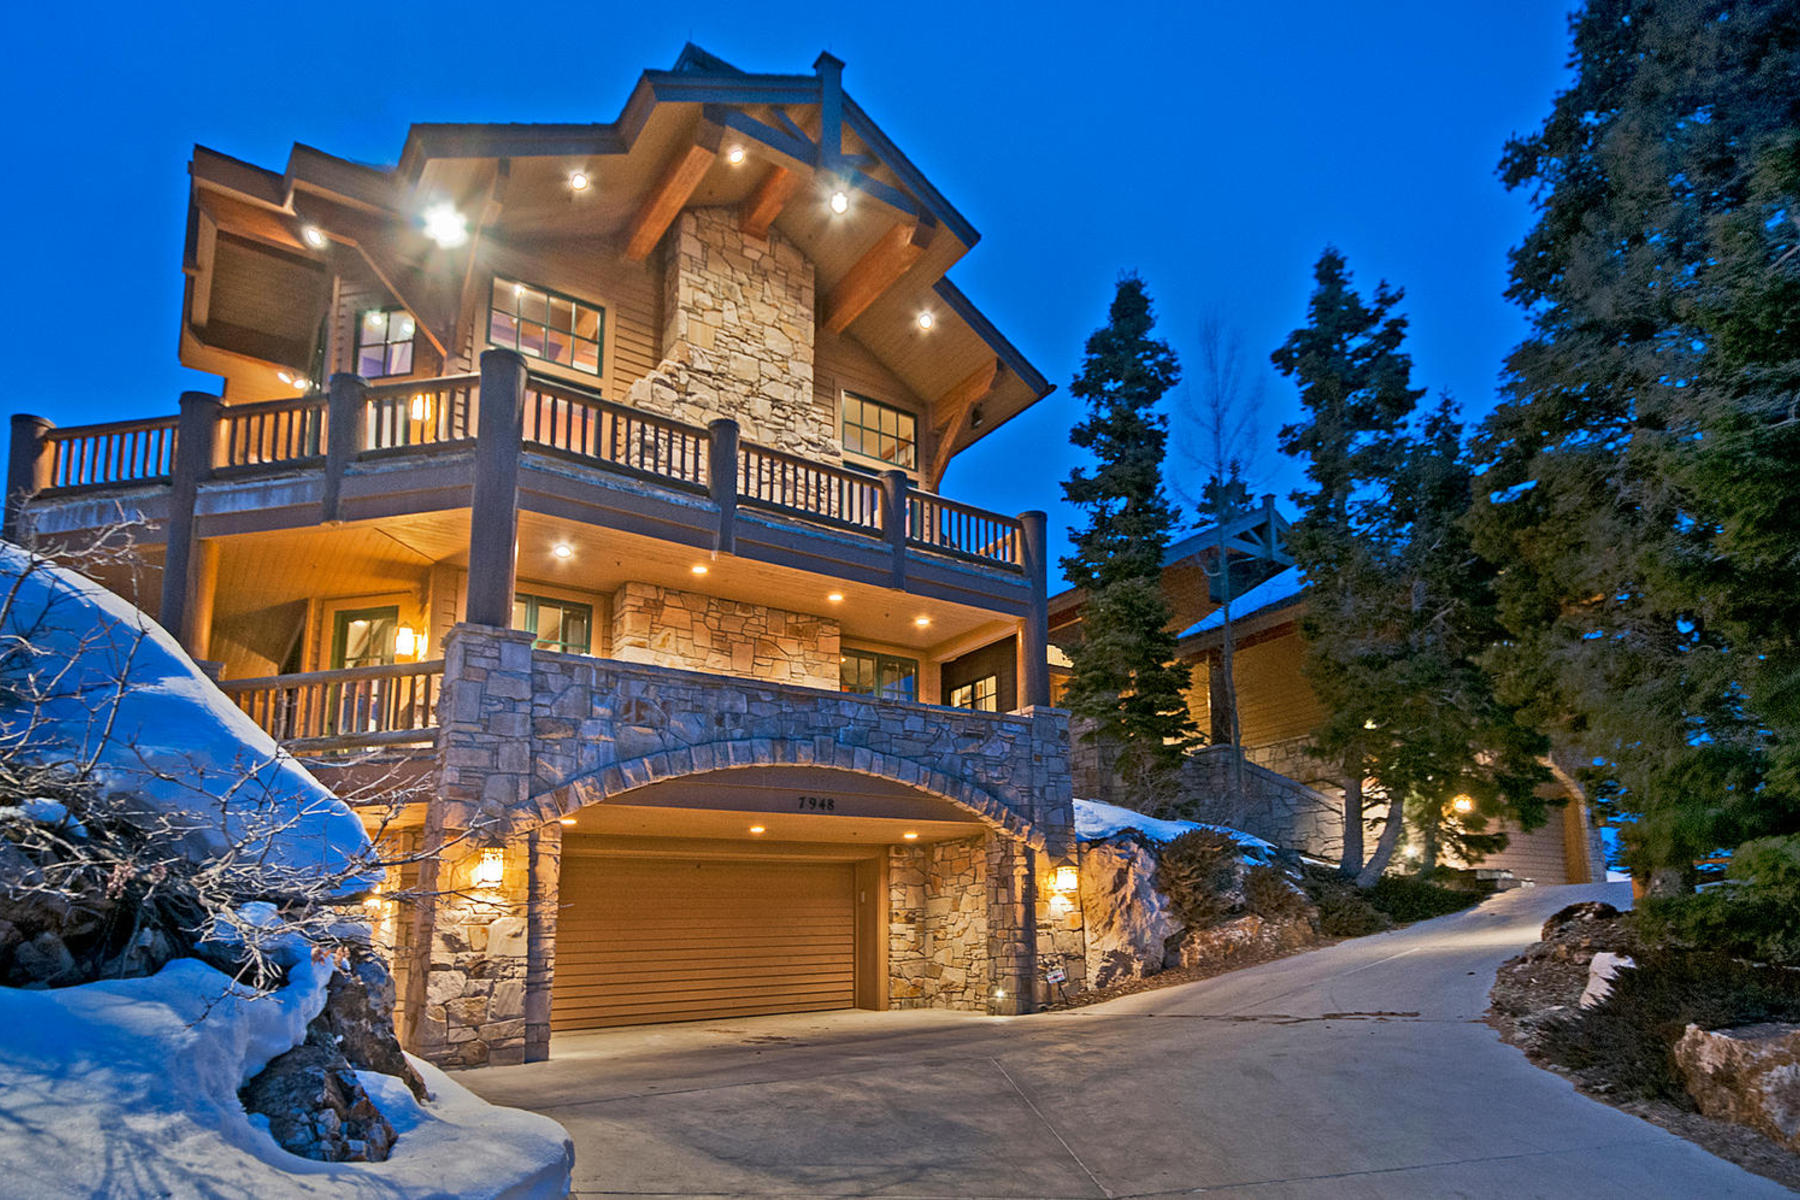 一戸建て のために 売買 アット Timeless Deer Valley Ski-In Ski-out Mountain Retreat 7948 Red Tail Ct Park City, ユタ 84060 アメリカ合衆国